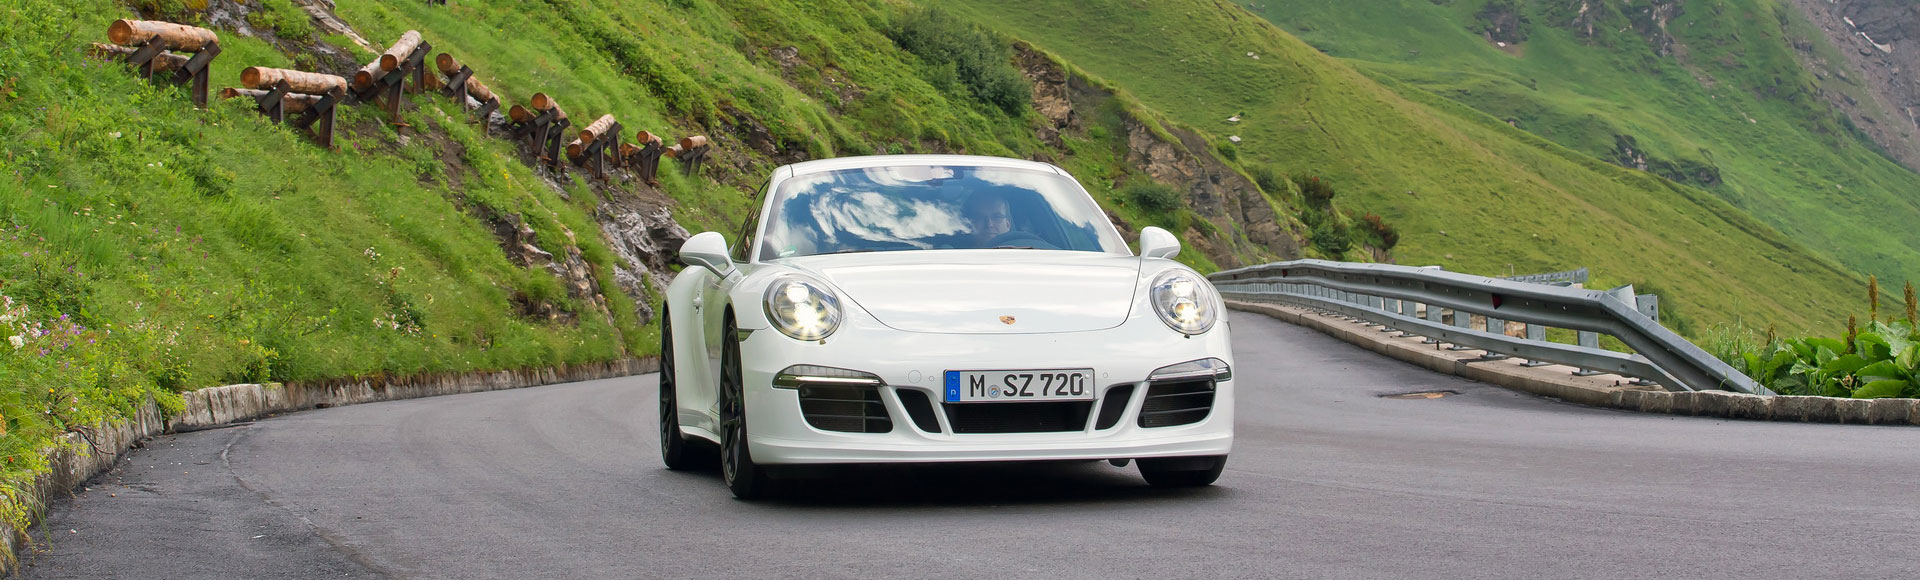 Porsche 991 GTS Coupe 2015 Sommer 038